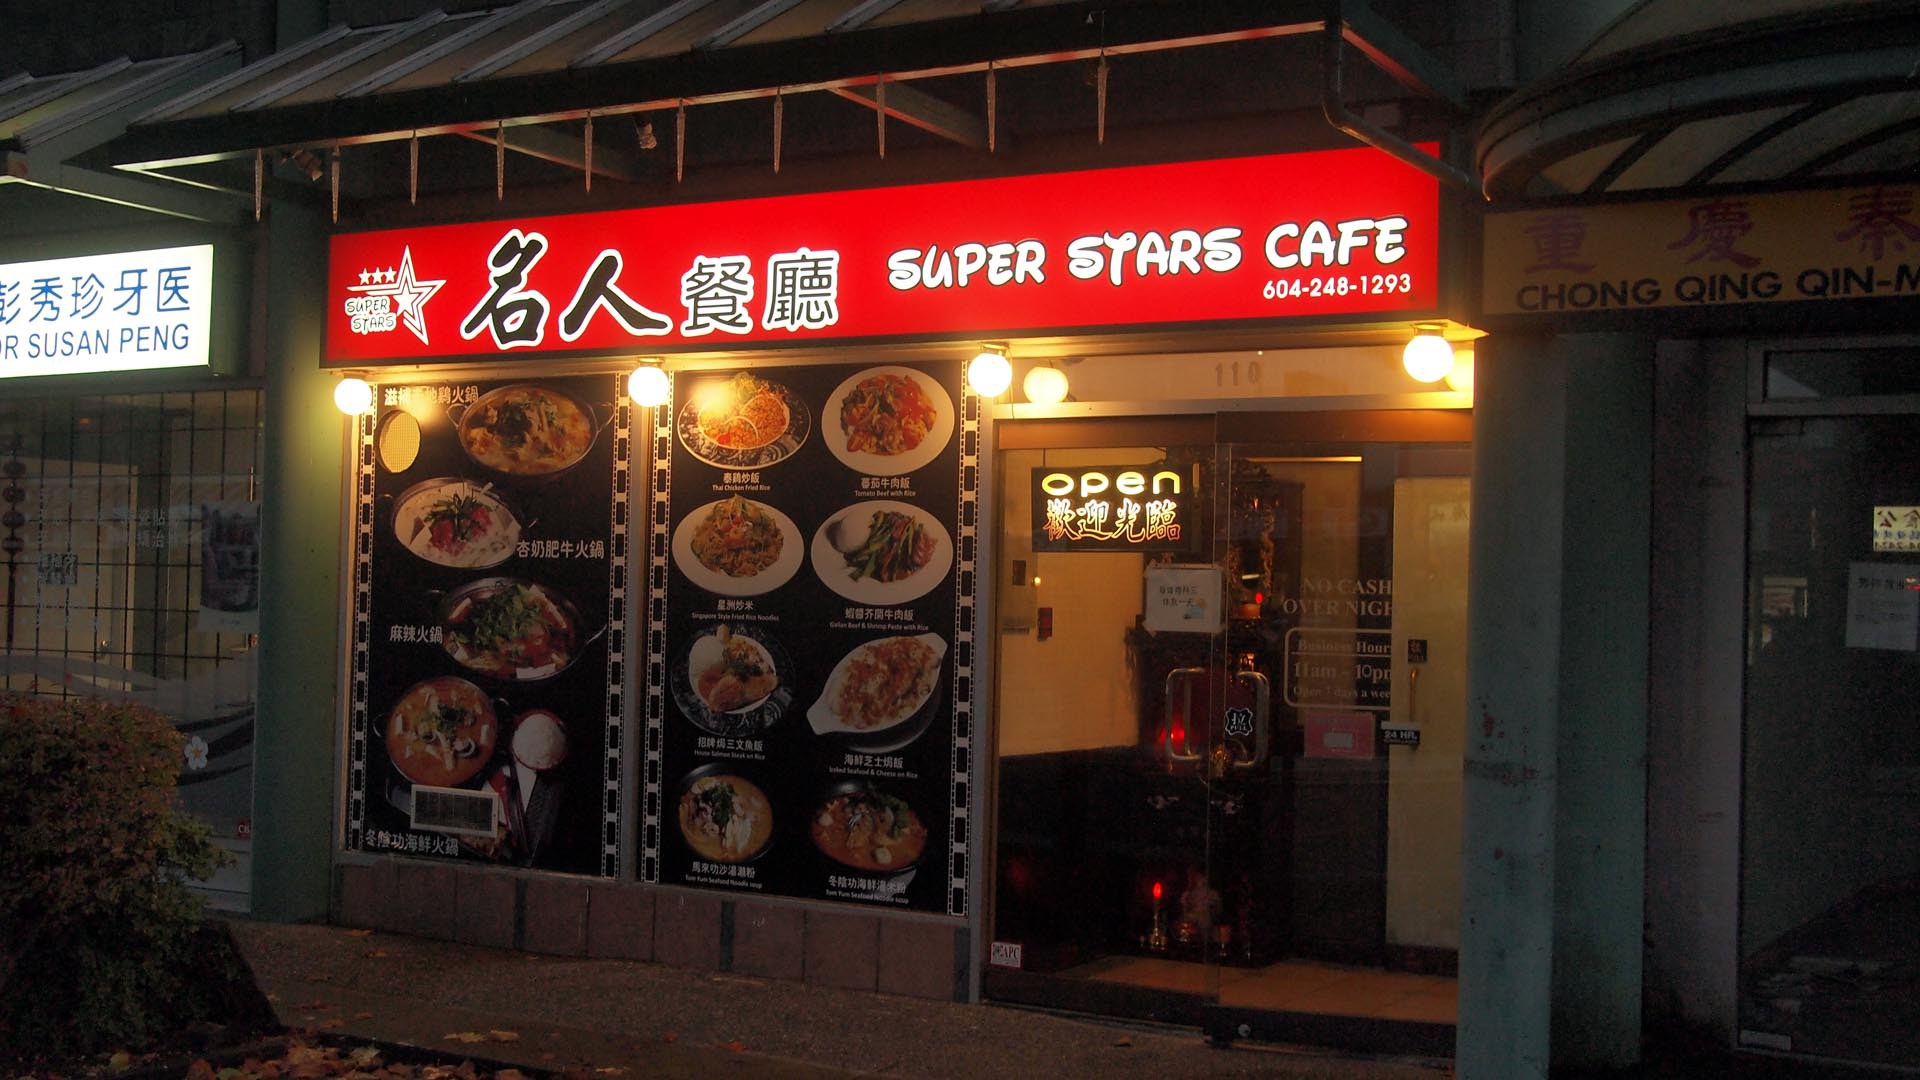 Super Stars Cafe, Image credit: Michael Kwan